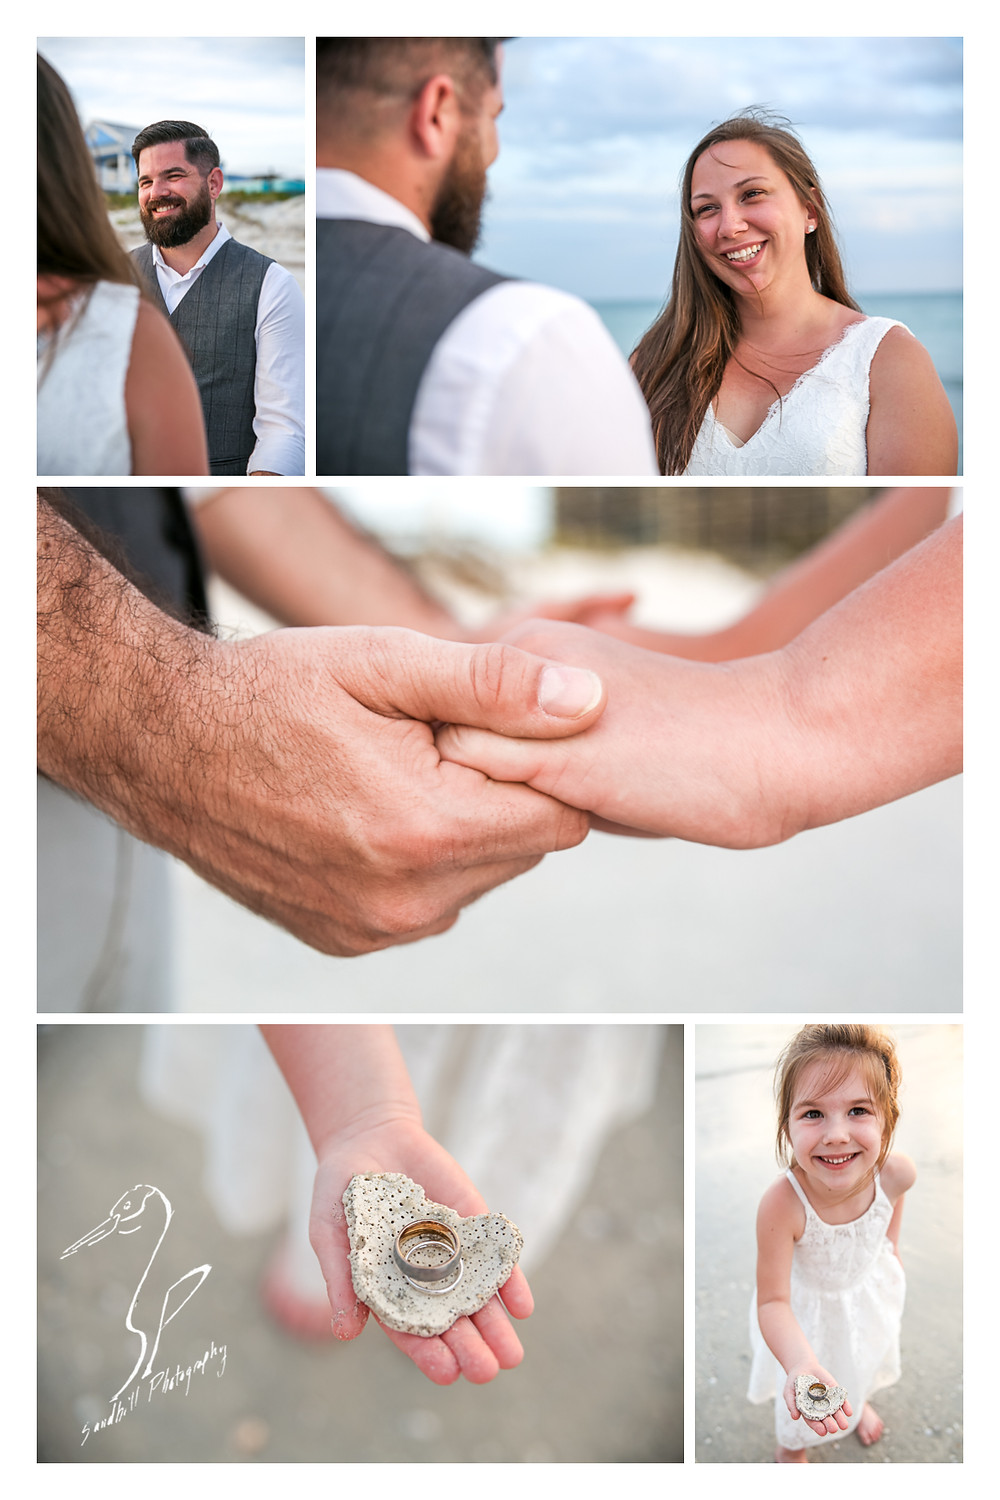 Treasure Island Wedding, Ceremony pictures on the beach, bride and groom holding hands, ring detail shot